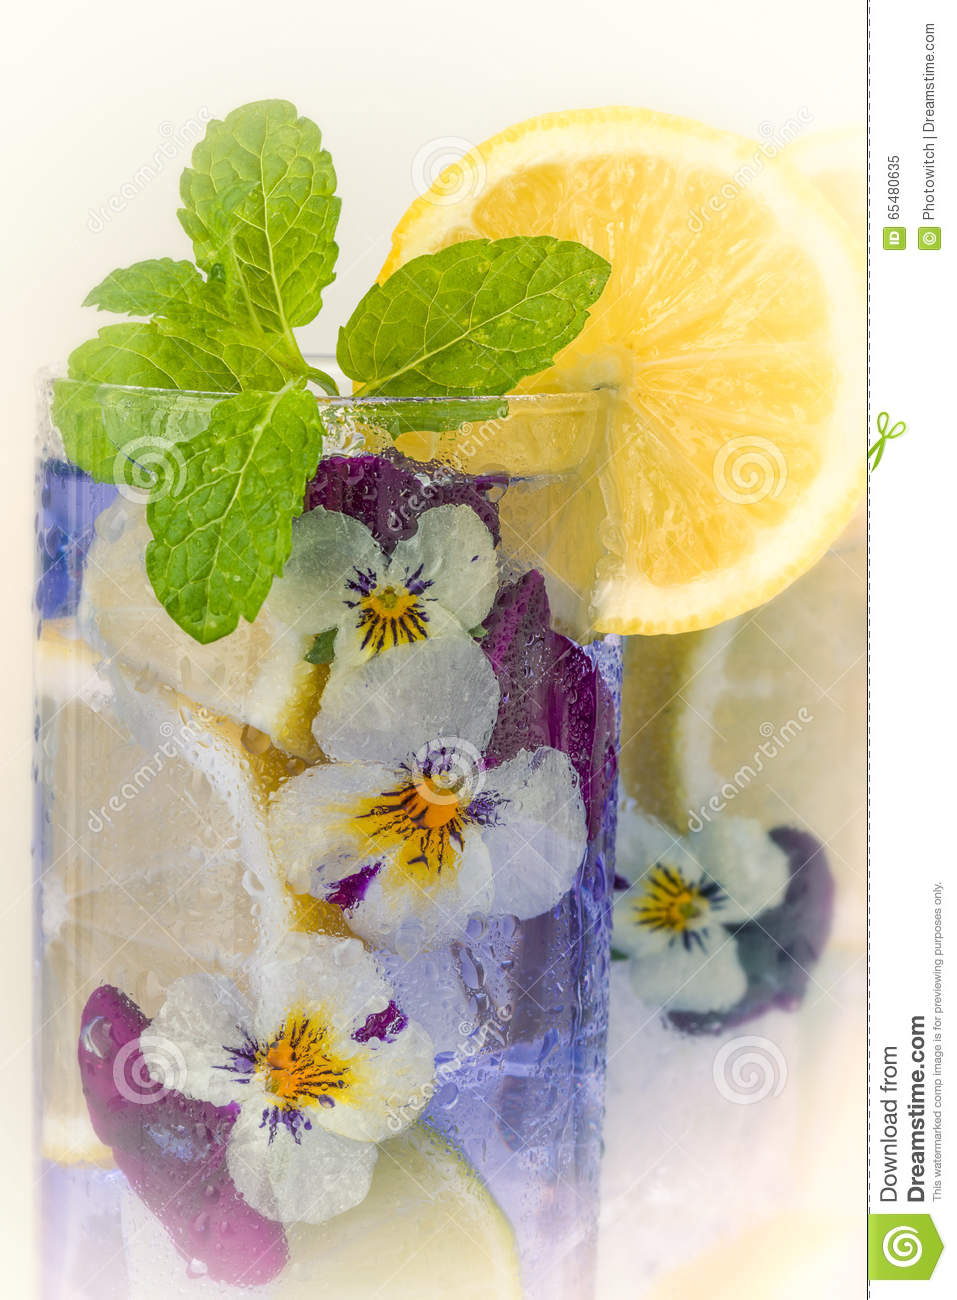 Cocktail viola con i fiori commestibili immagine stock for Fiori con la u